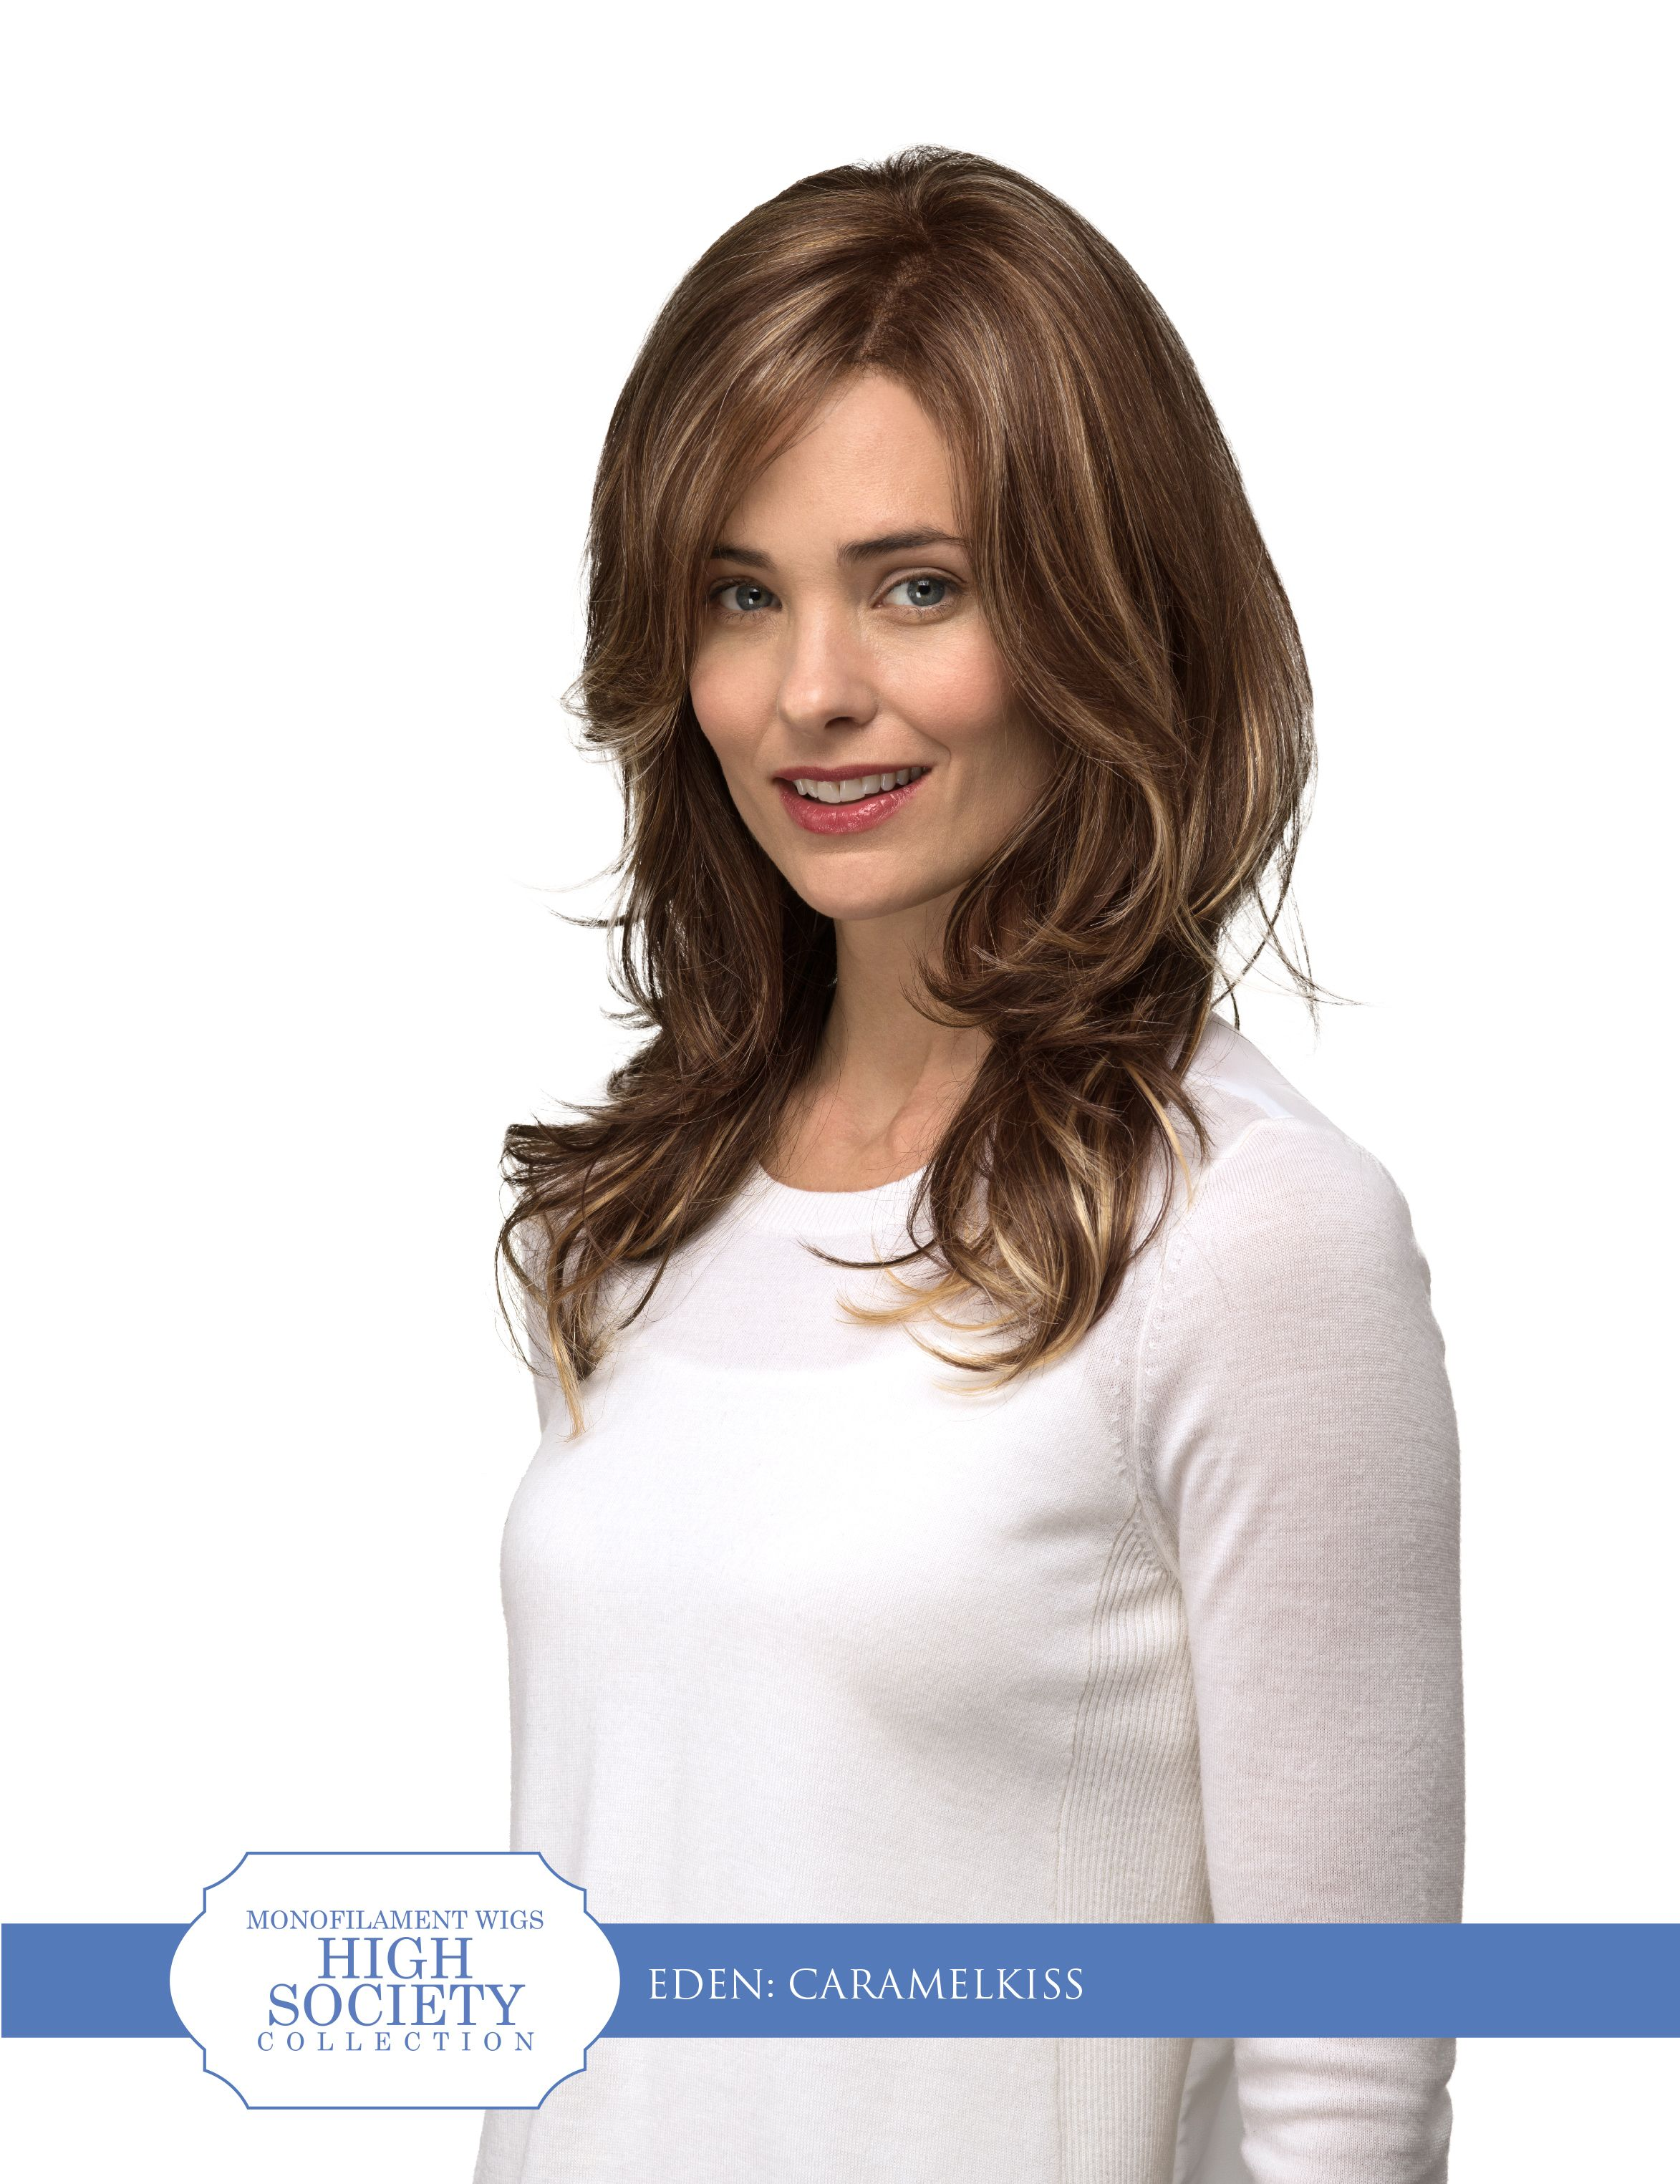 MONOFILAMENT TOP | LACE FRONT | Long, Layered Cut with Free Flowing ...